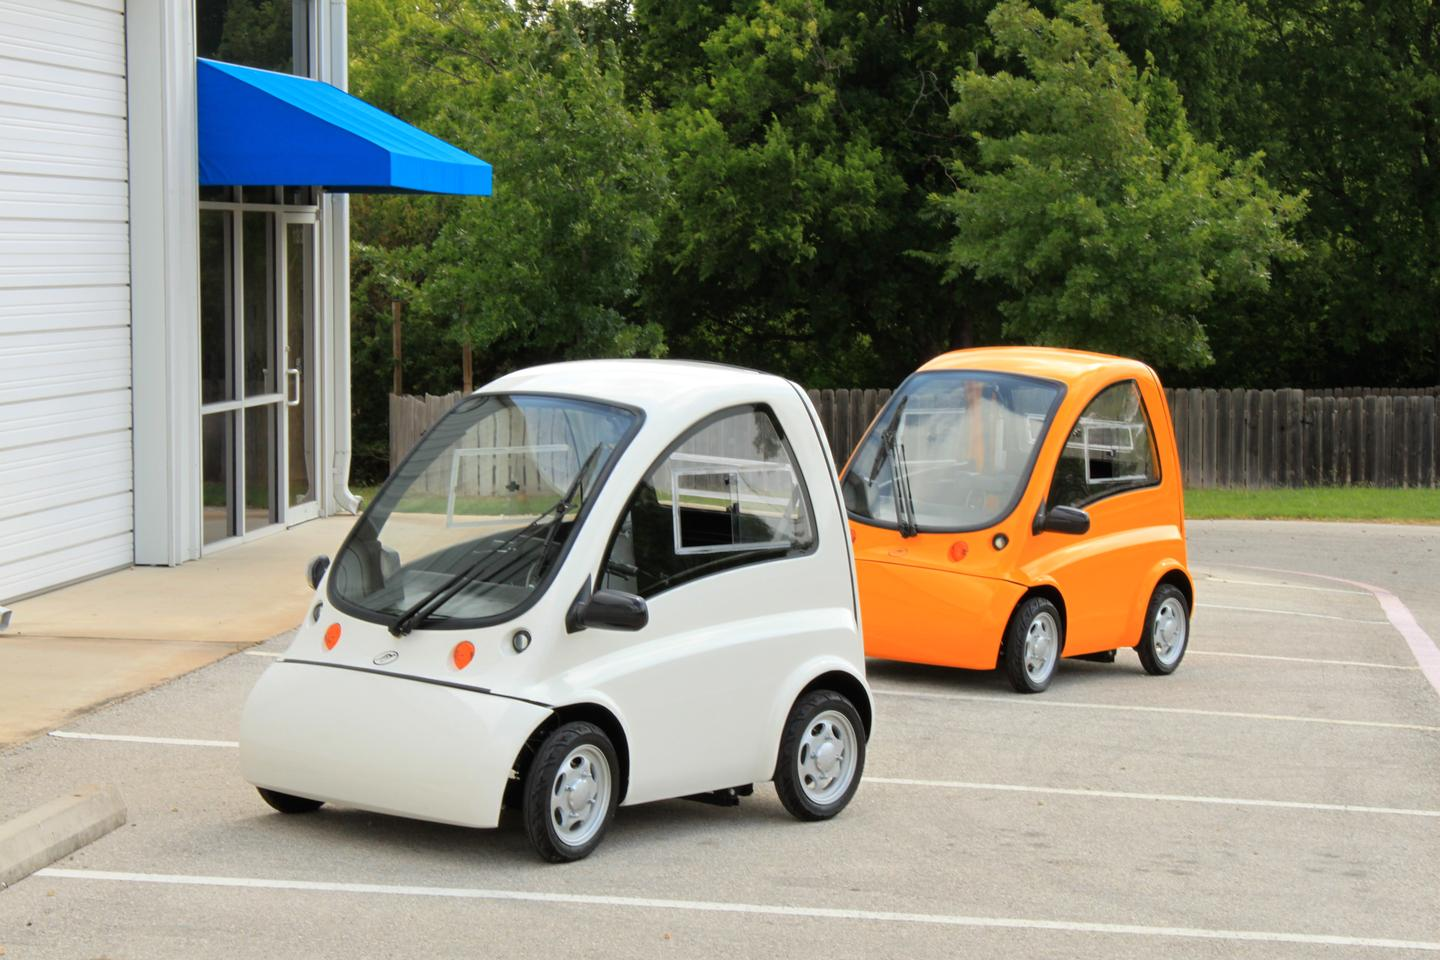 The Kenguru drive-from-wheelchair electric car